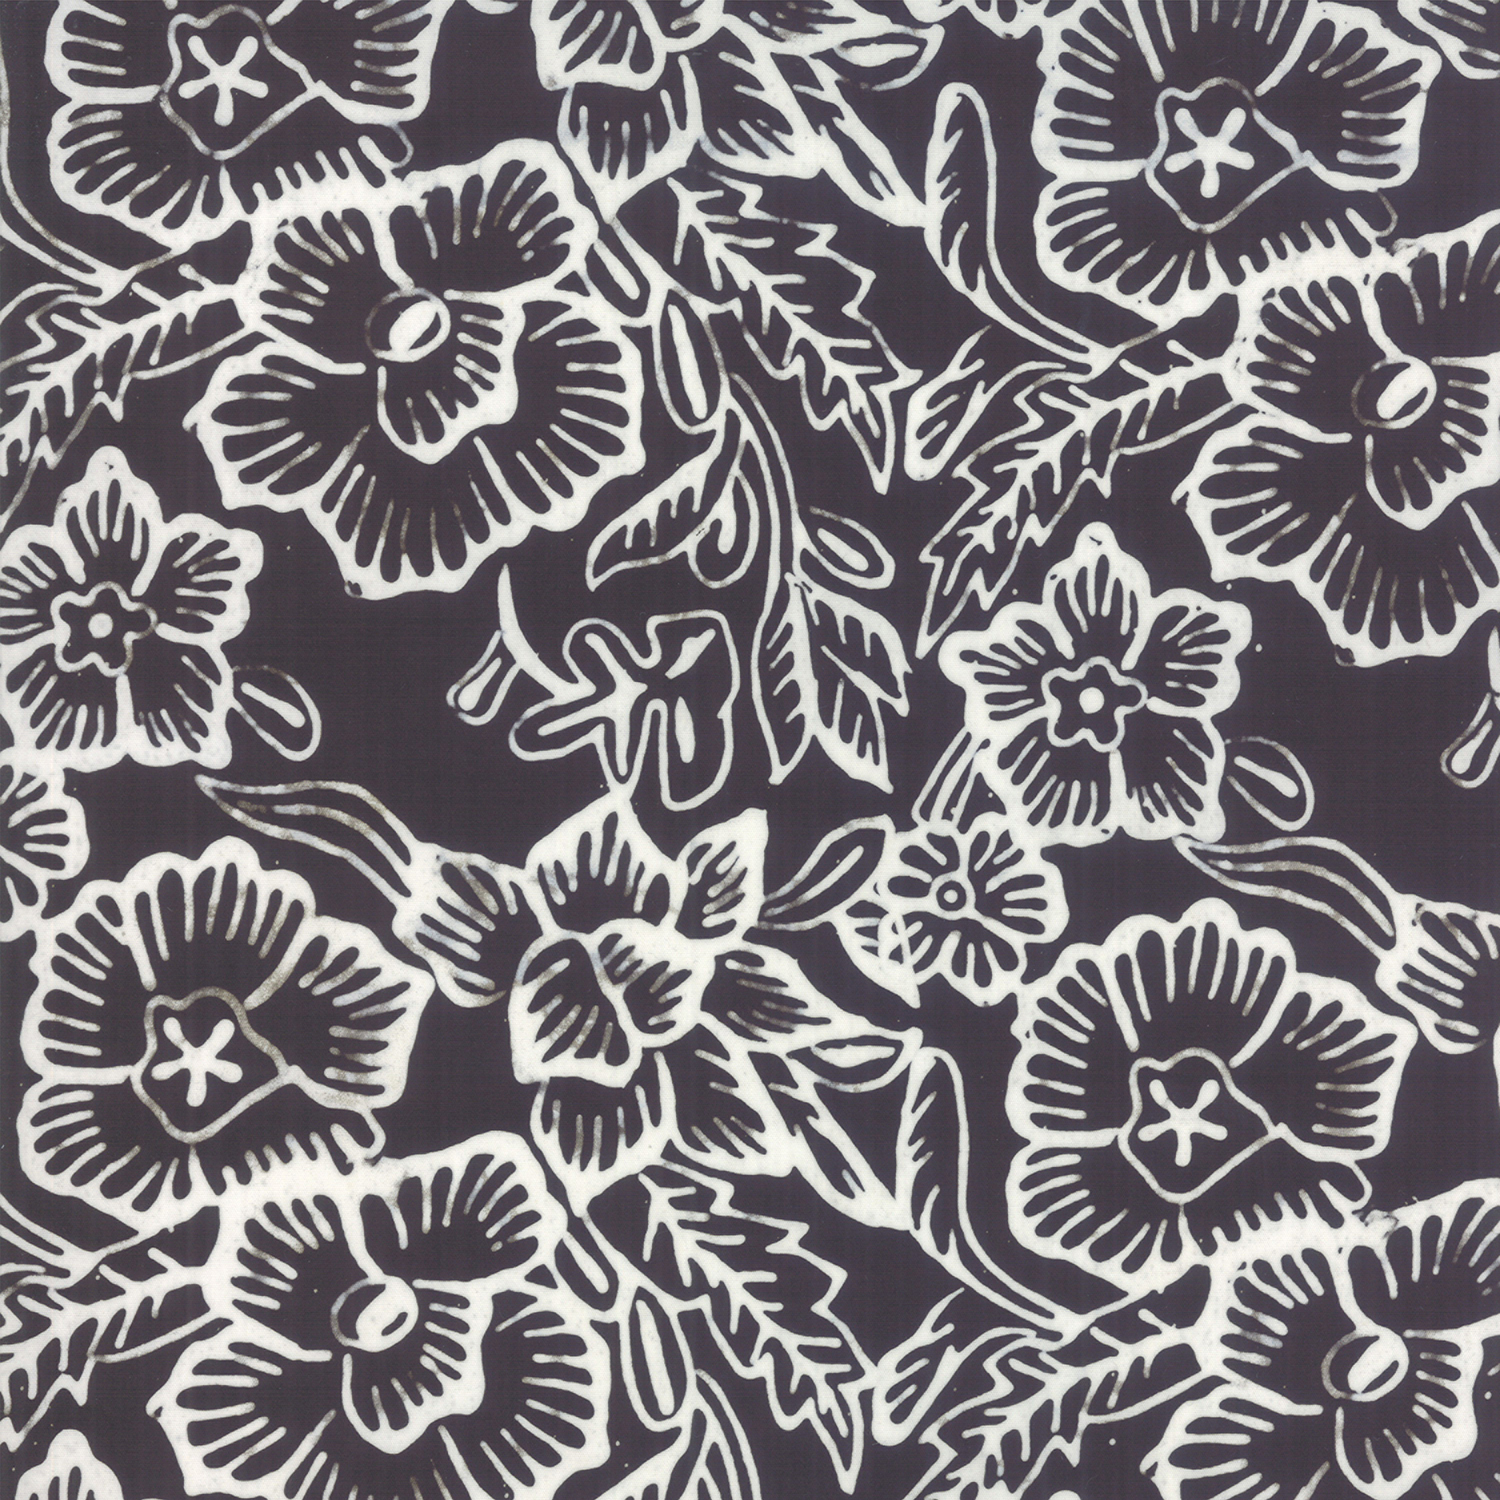 Aloha Batiks - Black and White 4356-43